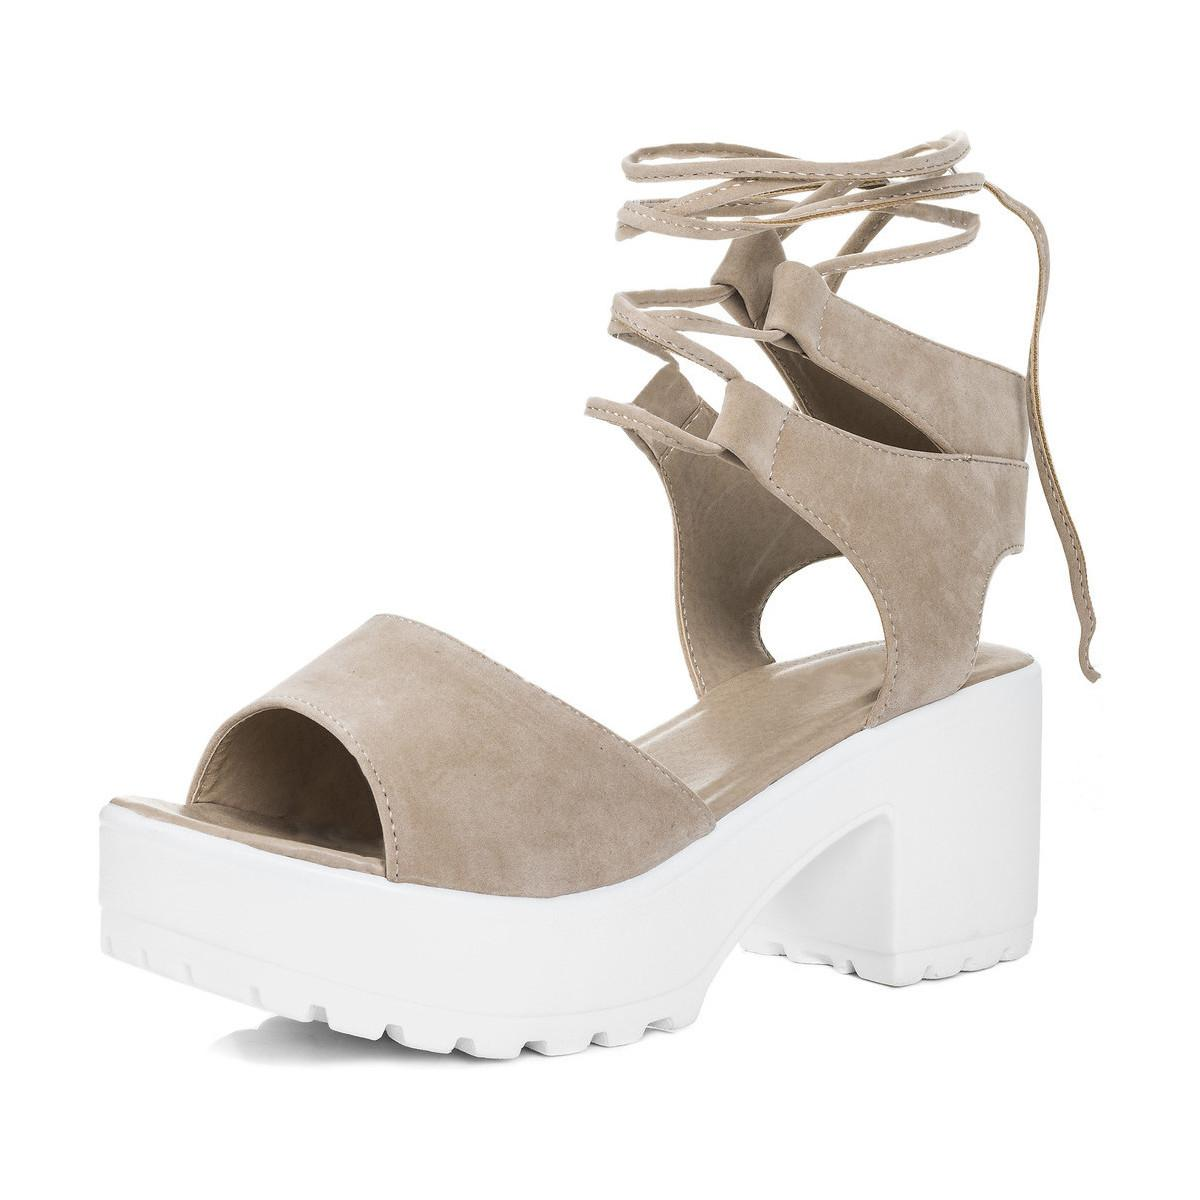 e7afdbbe11 SPYLOVEBUY. Molly Open Peep Toe Mid Heel Sandals Shoes - Nude Suede Style  ...